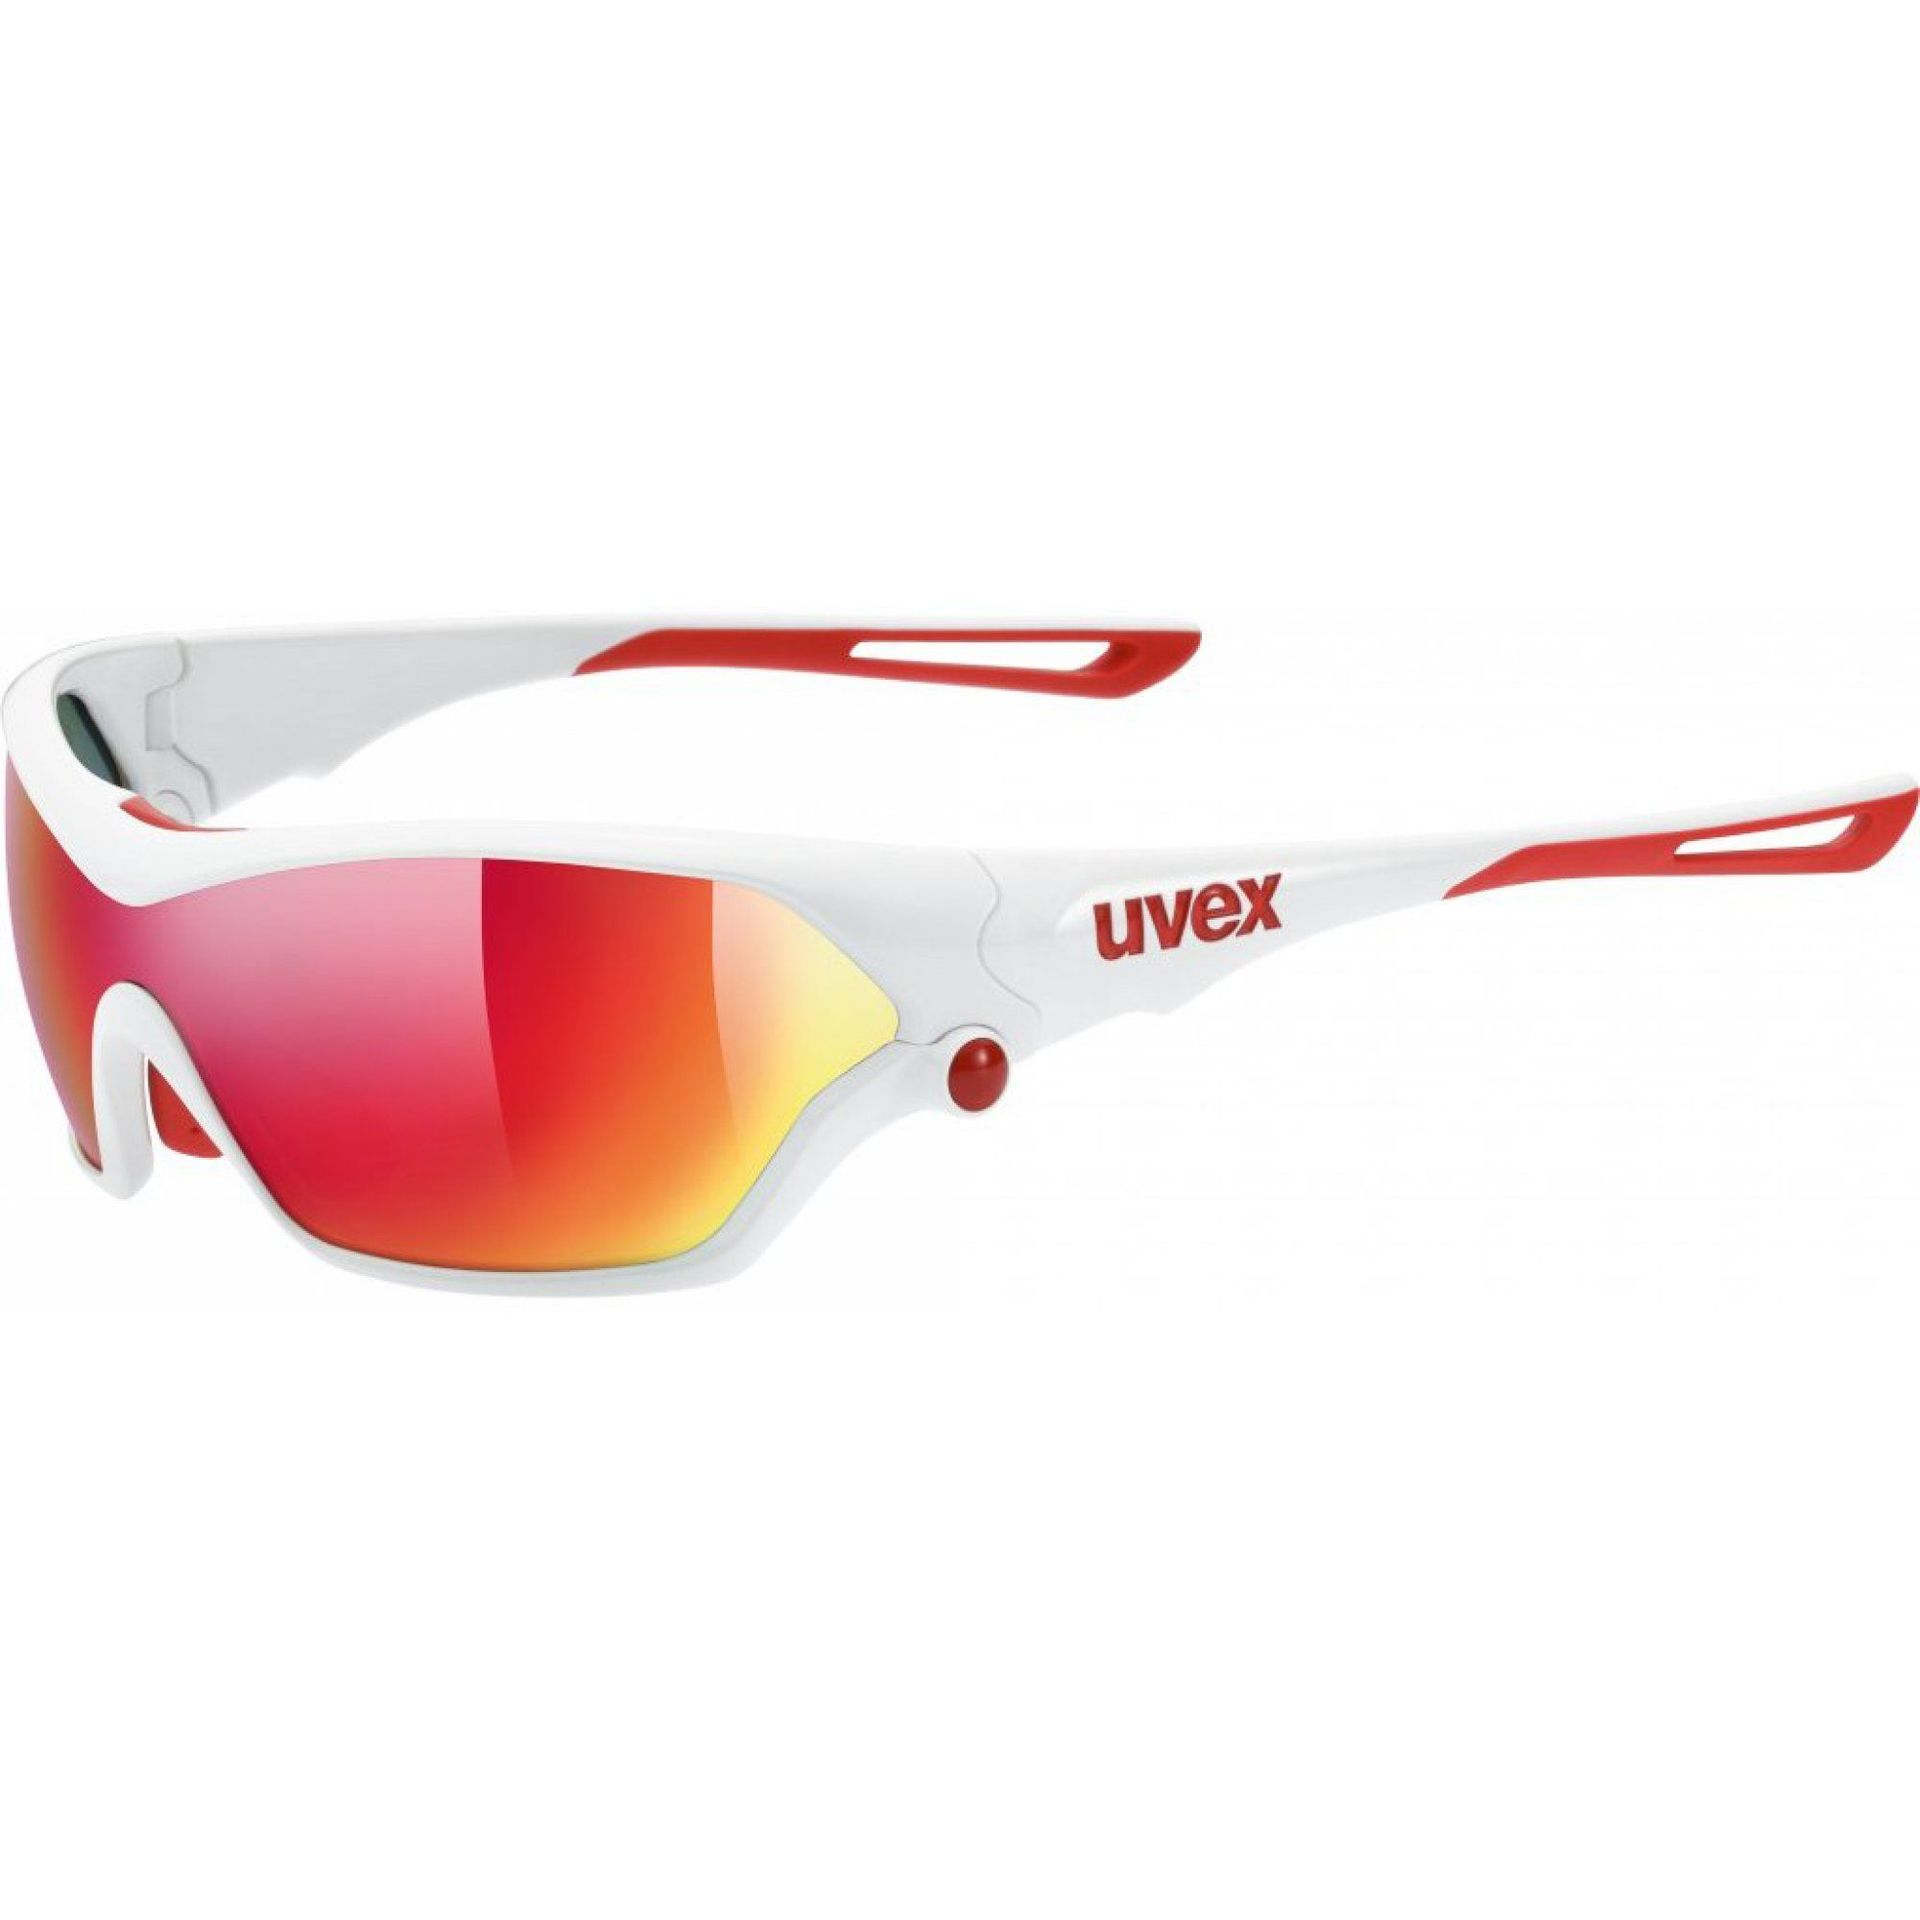 OKULARY UVEX SPORTSTYLE 705 WHITE RED